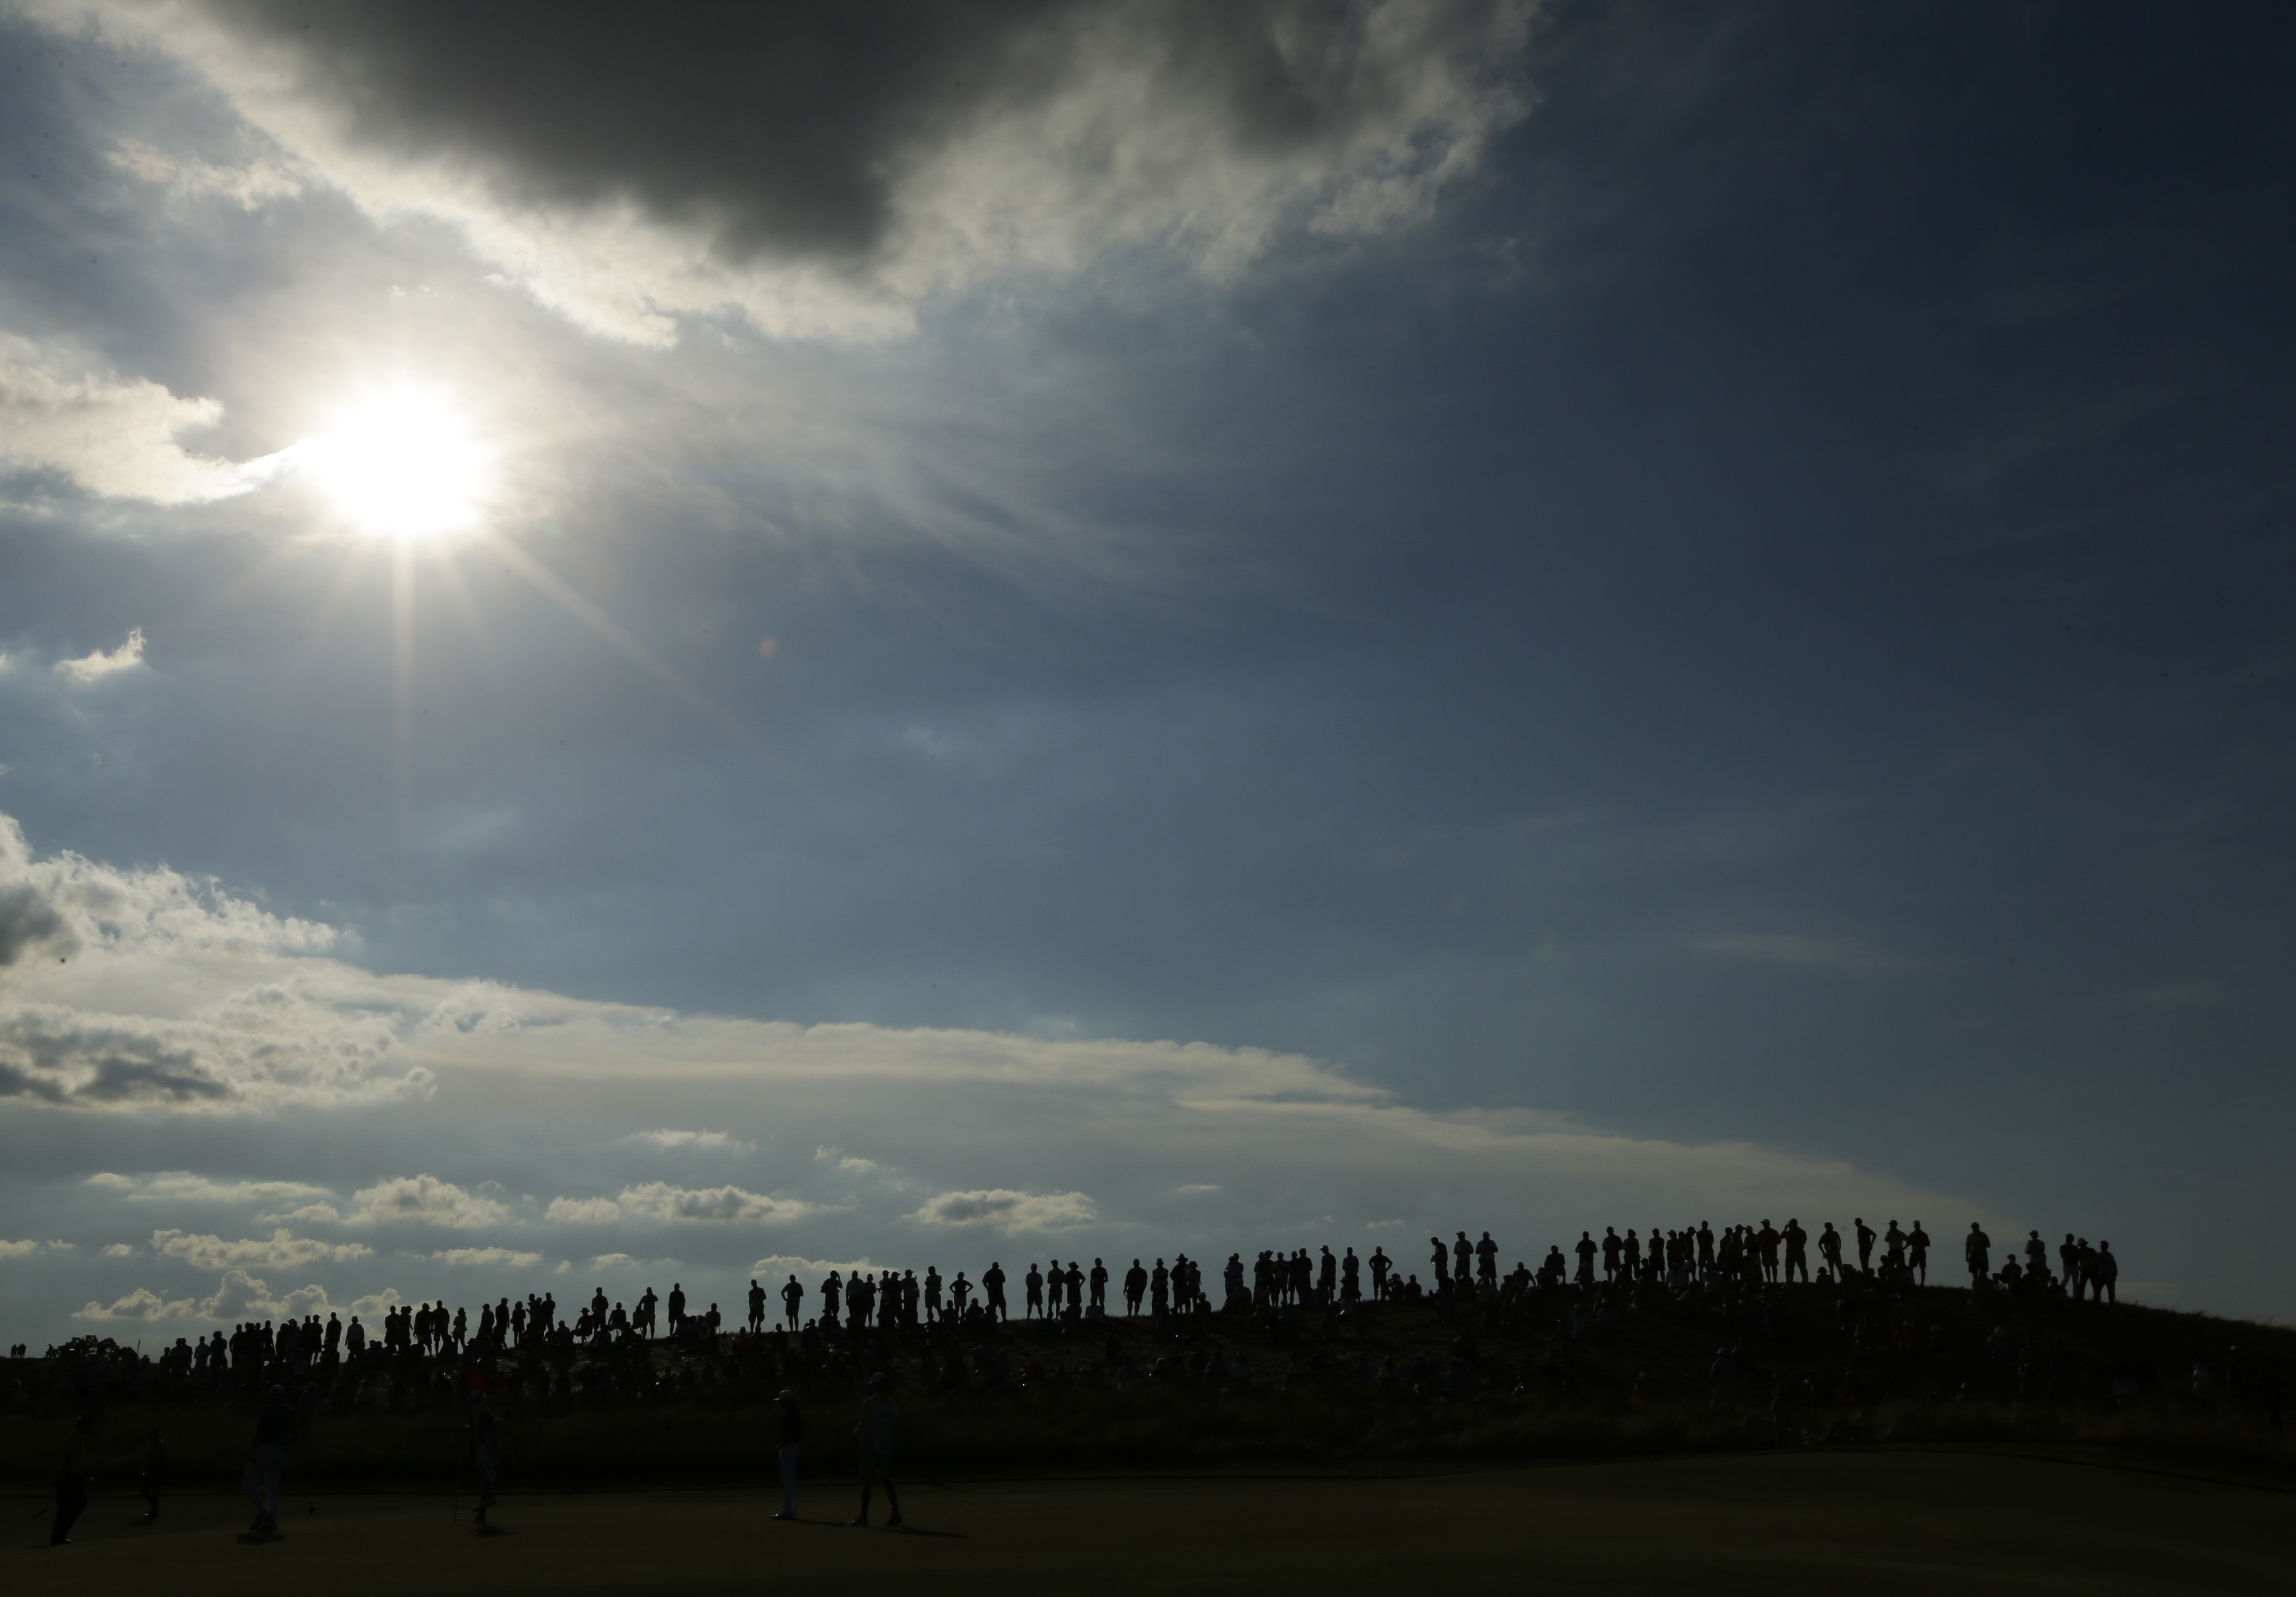 Fans line a hill on the 17th hole during the second round of the U.S. Open golf tournament Friday, June 16, 2017, at Erin Hills in Erin, Wis. (AP Photo/Charlie Riedel)